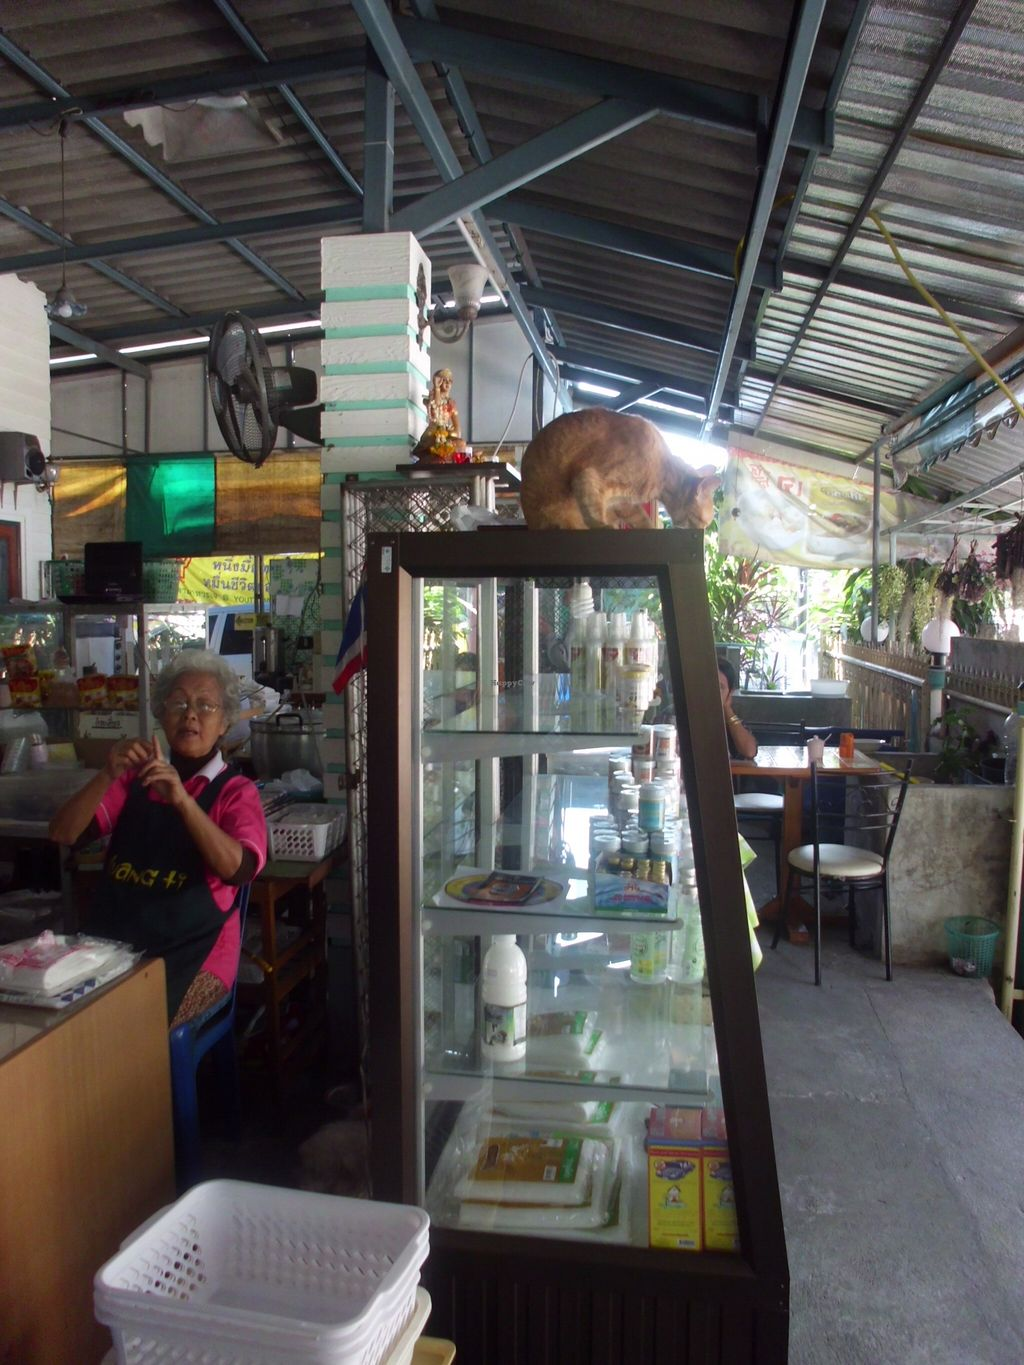 "Photo of Vegetarian Eatery & Shop  by <a href=""/members/profile/Maros"">Maros</a> <br/>Typical staff in Thai vegan restaurants - a nice lady and a cat. :) <br/> March 8, 2016  - <a href='/contact/abuse/image/70635/139349'>Report</a>"